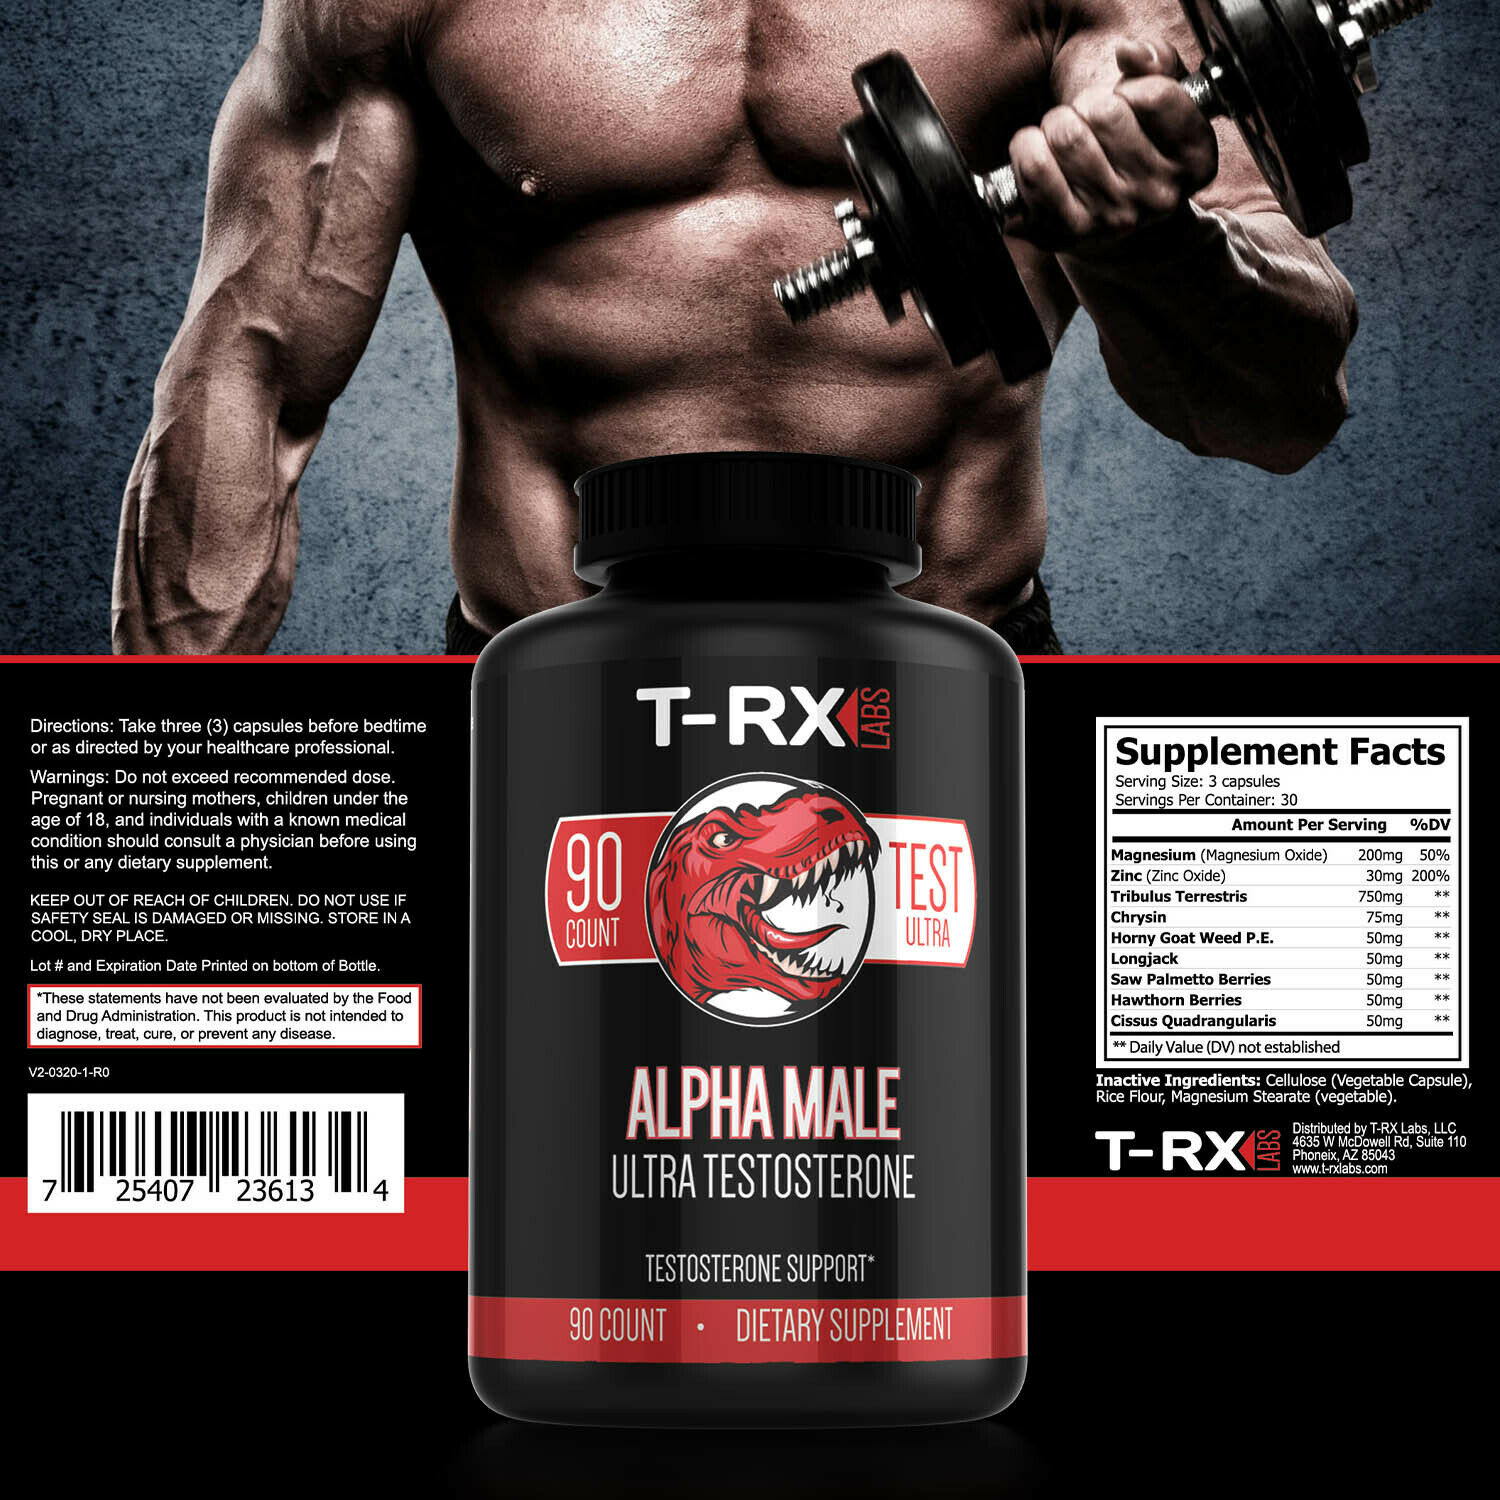 T-RX Testosterone Booster for Men More Muscle Mass Strength Stamina Sex Drive eBay